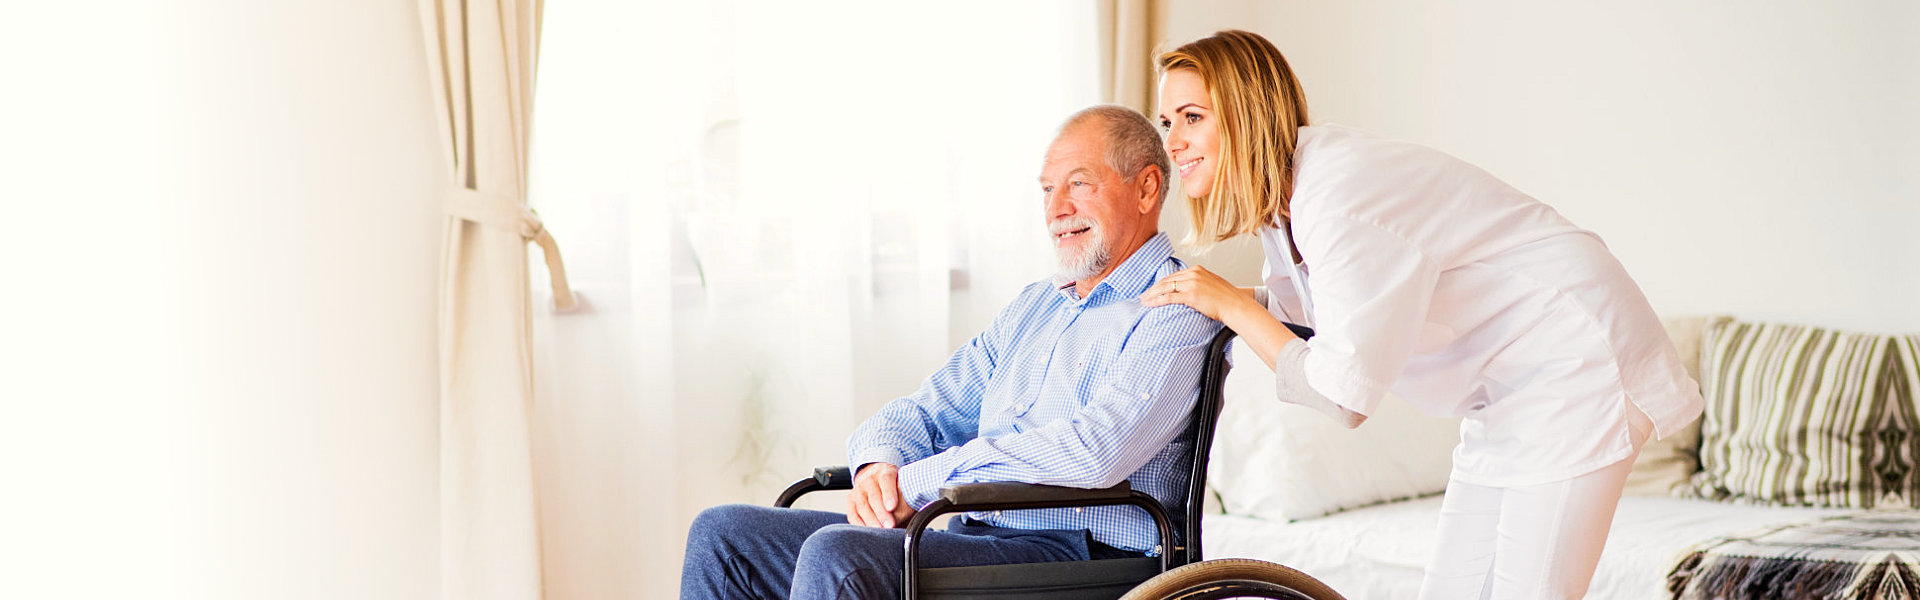 Portrait of senior man in a wheelchair and young caregiver